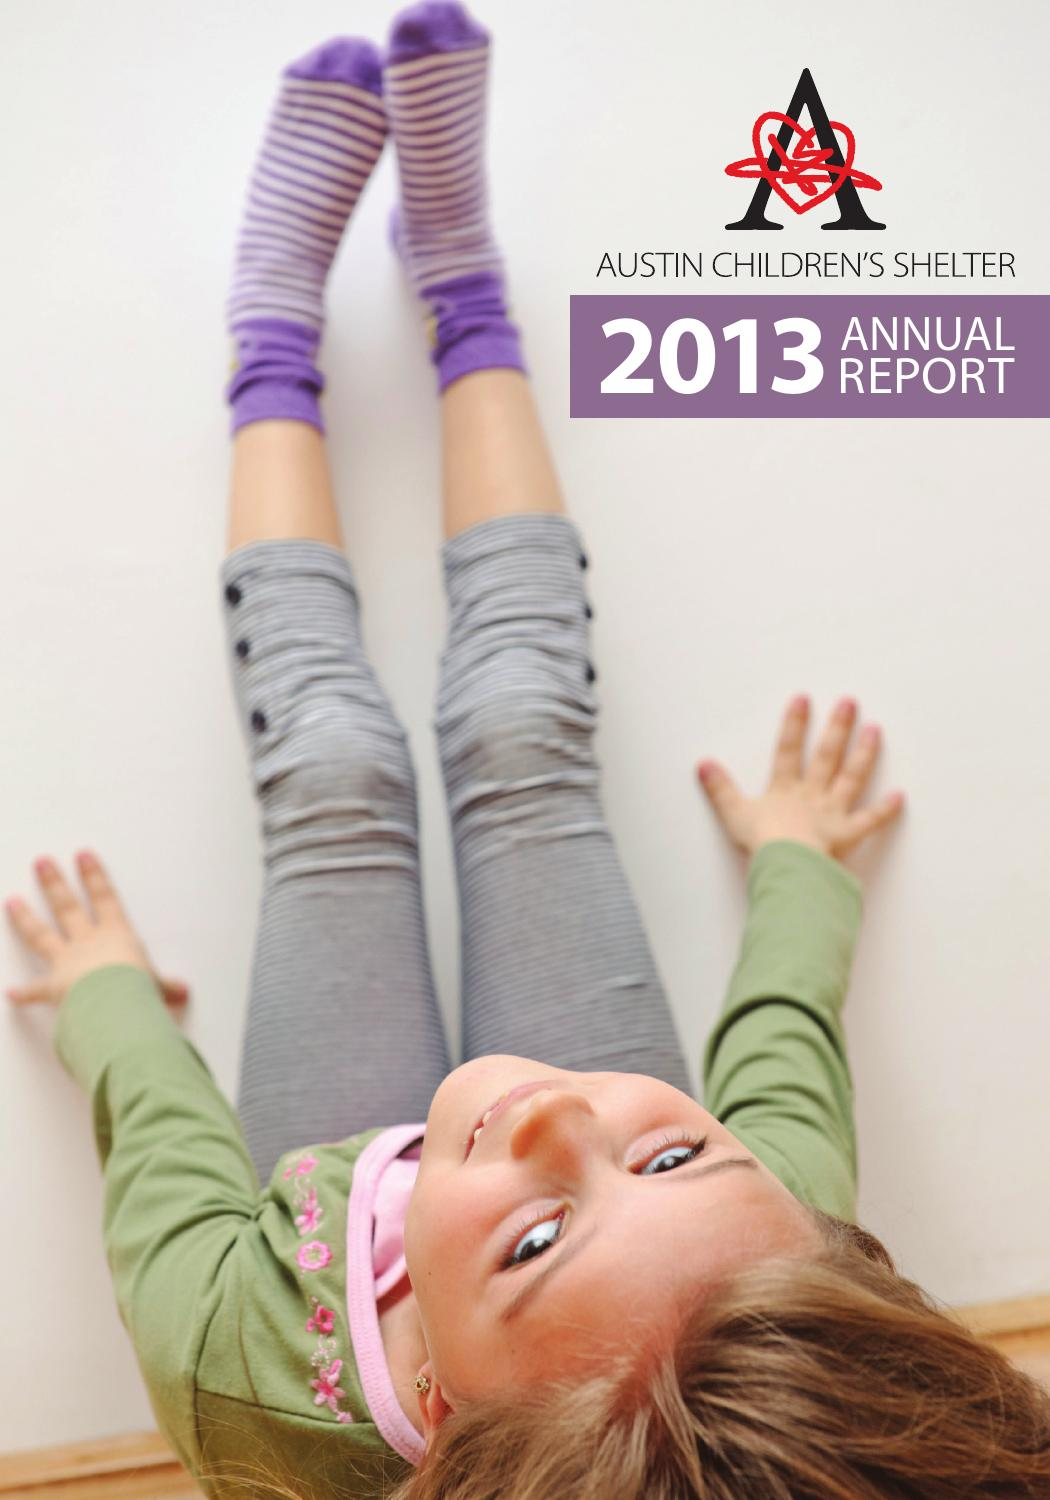 dawn s annual report by brenda chrystie issuu annual report 2013